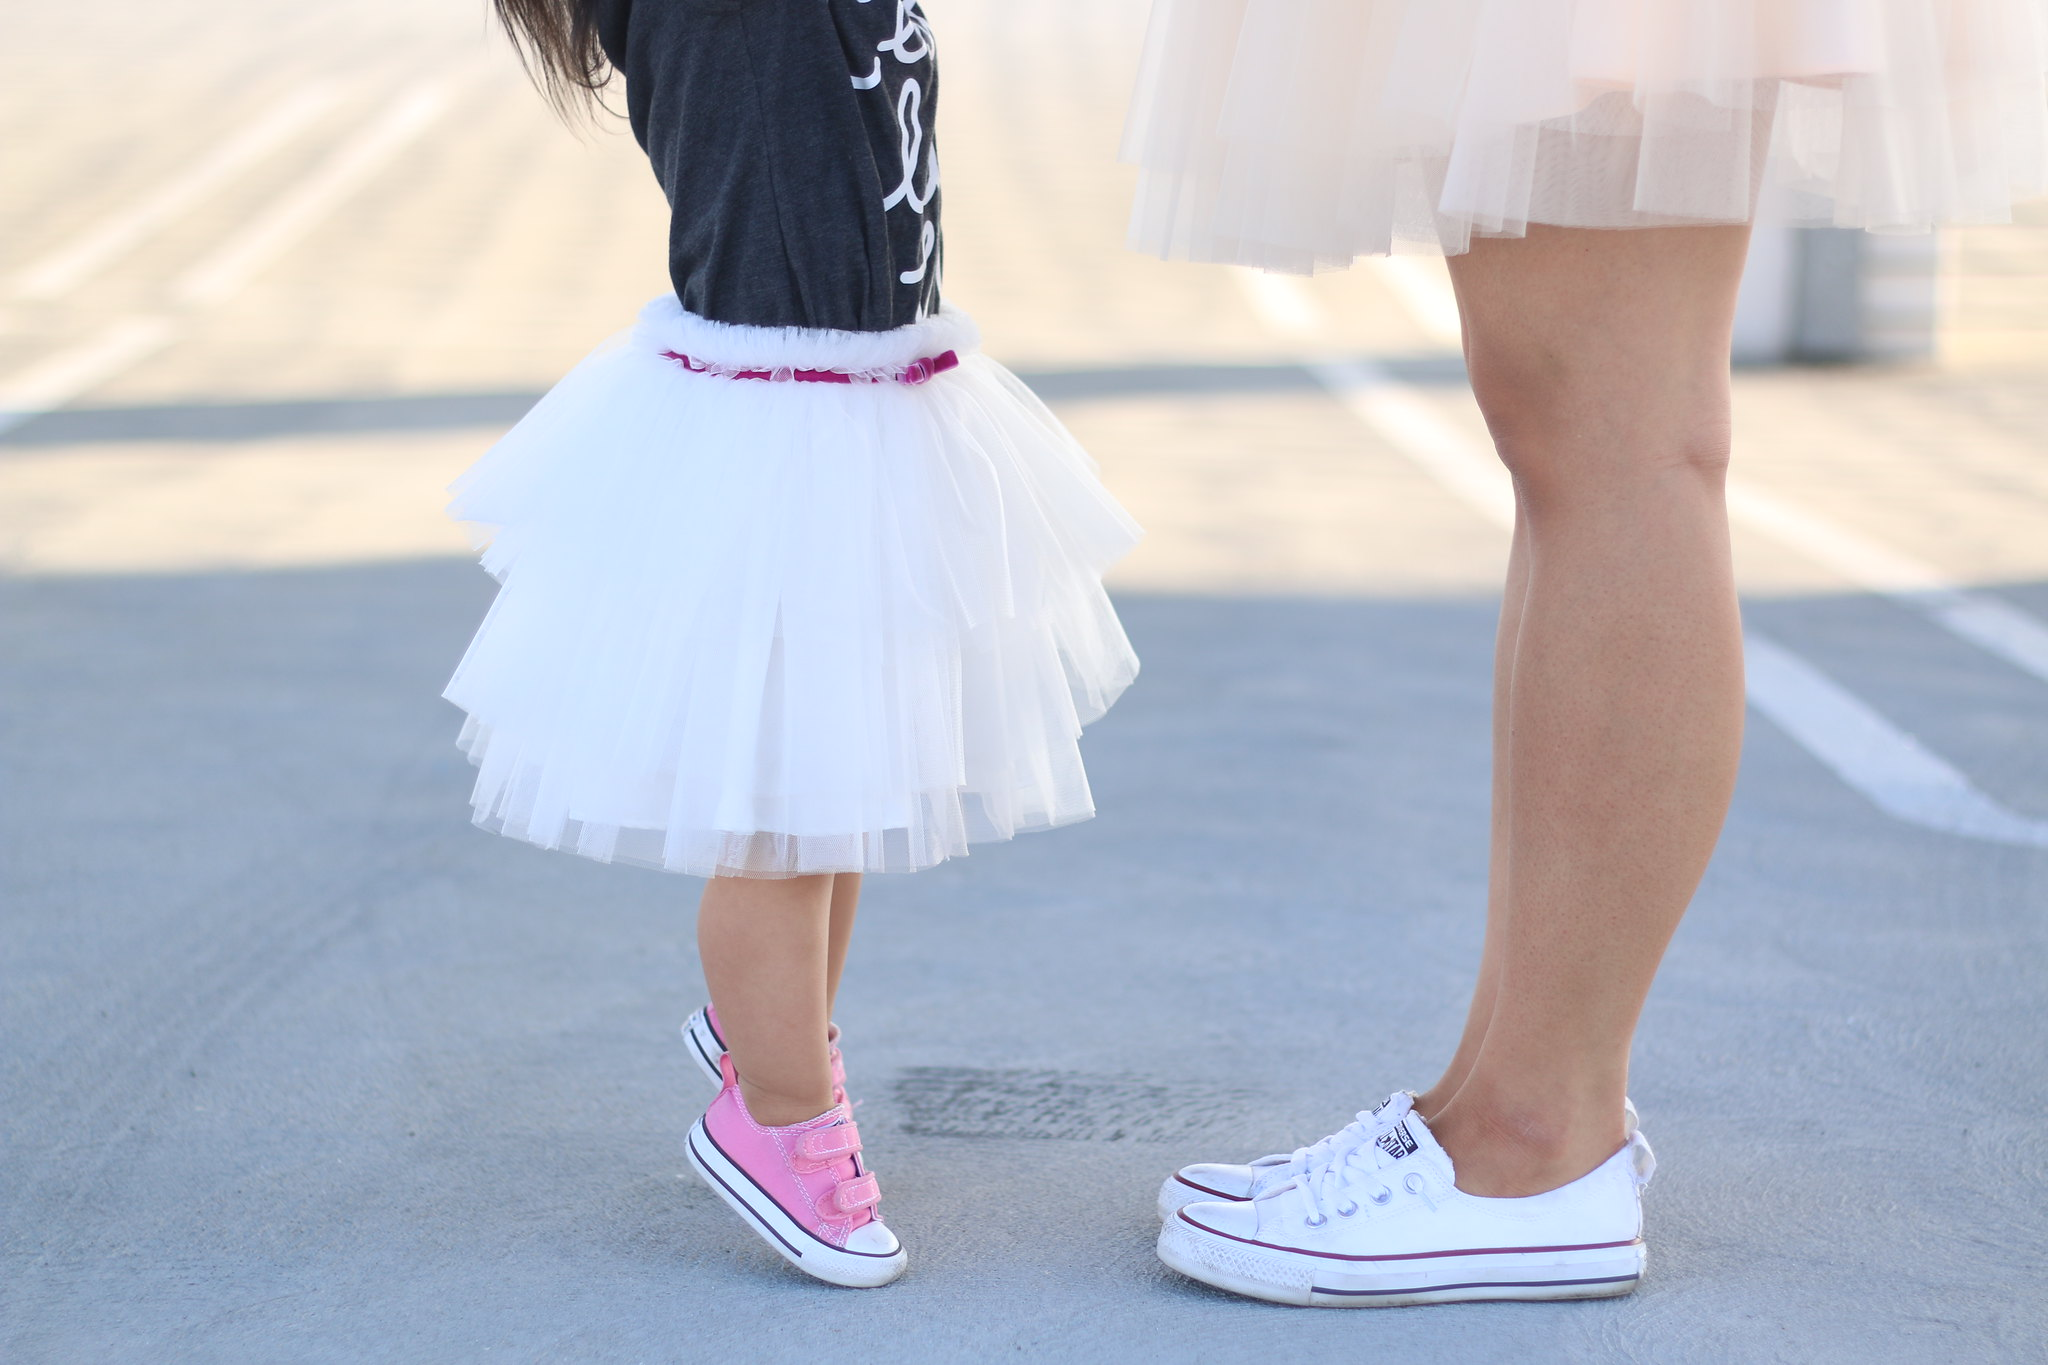 simplyxclassic, tulle skirt, space 46 boutique, chucks, mommy blogger, style, fashion, mommy and me